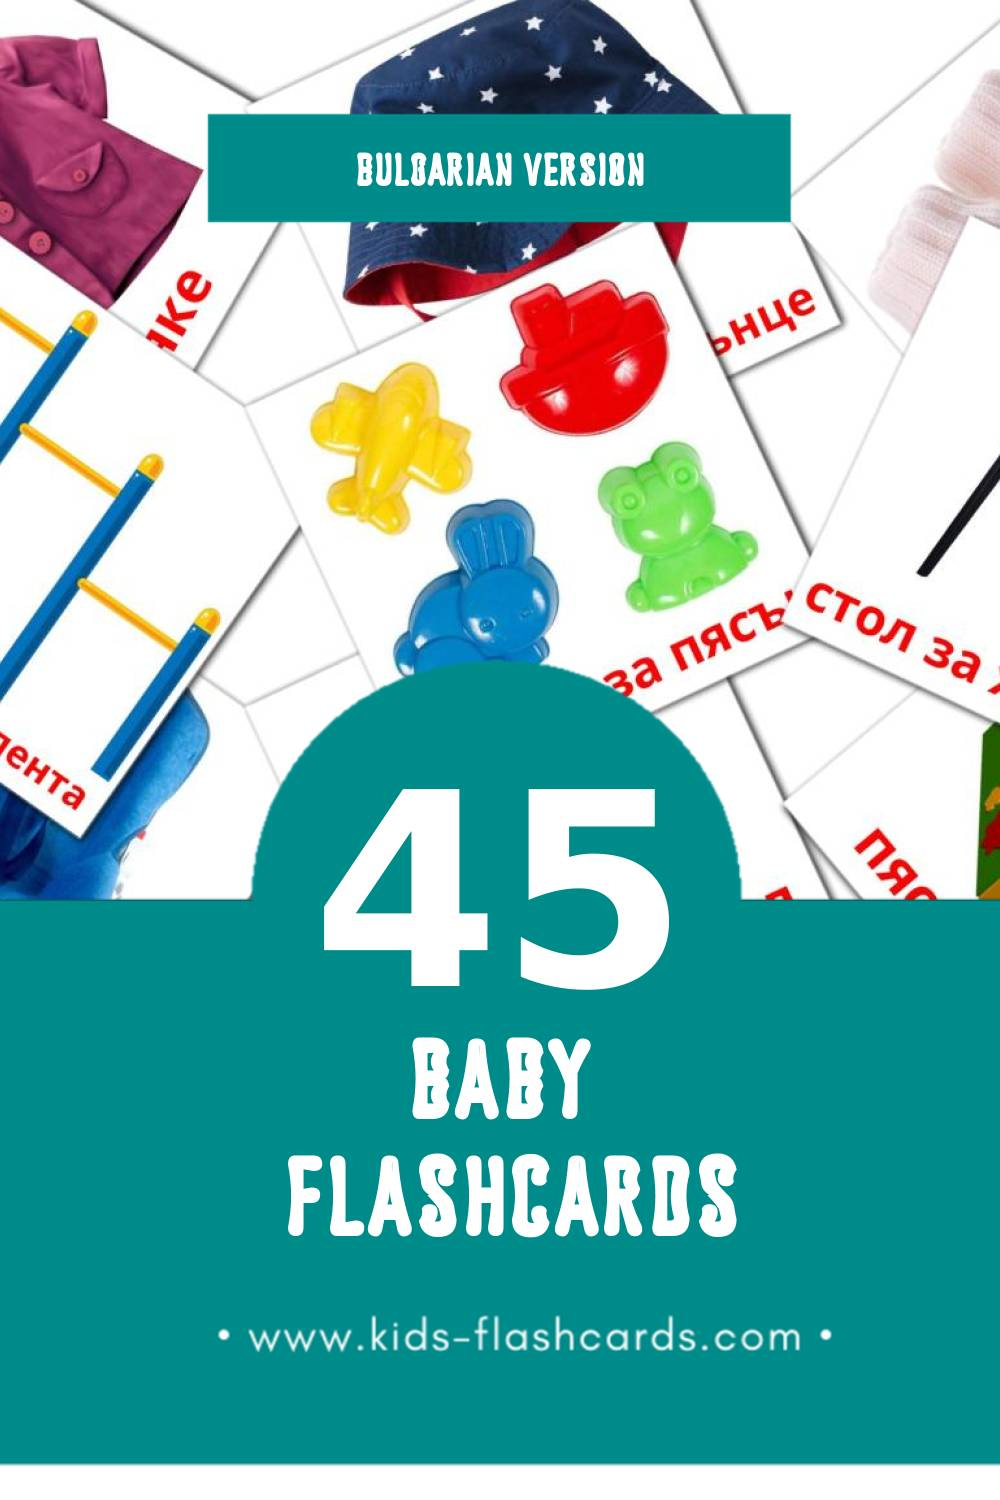 Visual Бебе Flashcards for Toddlers (45 cards in Bulgarian)